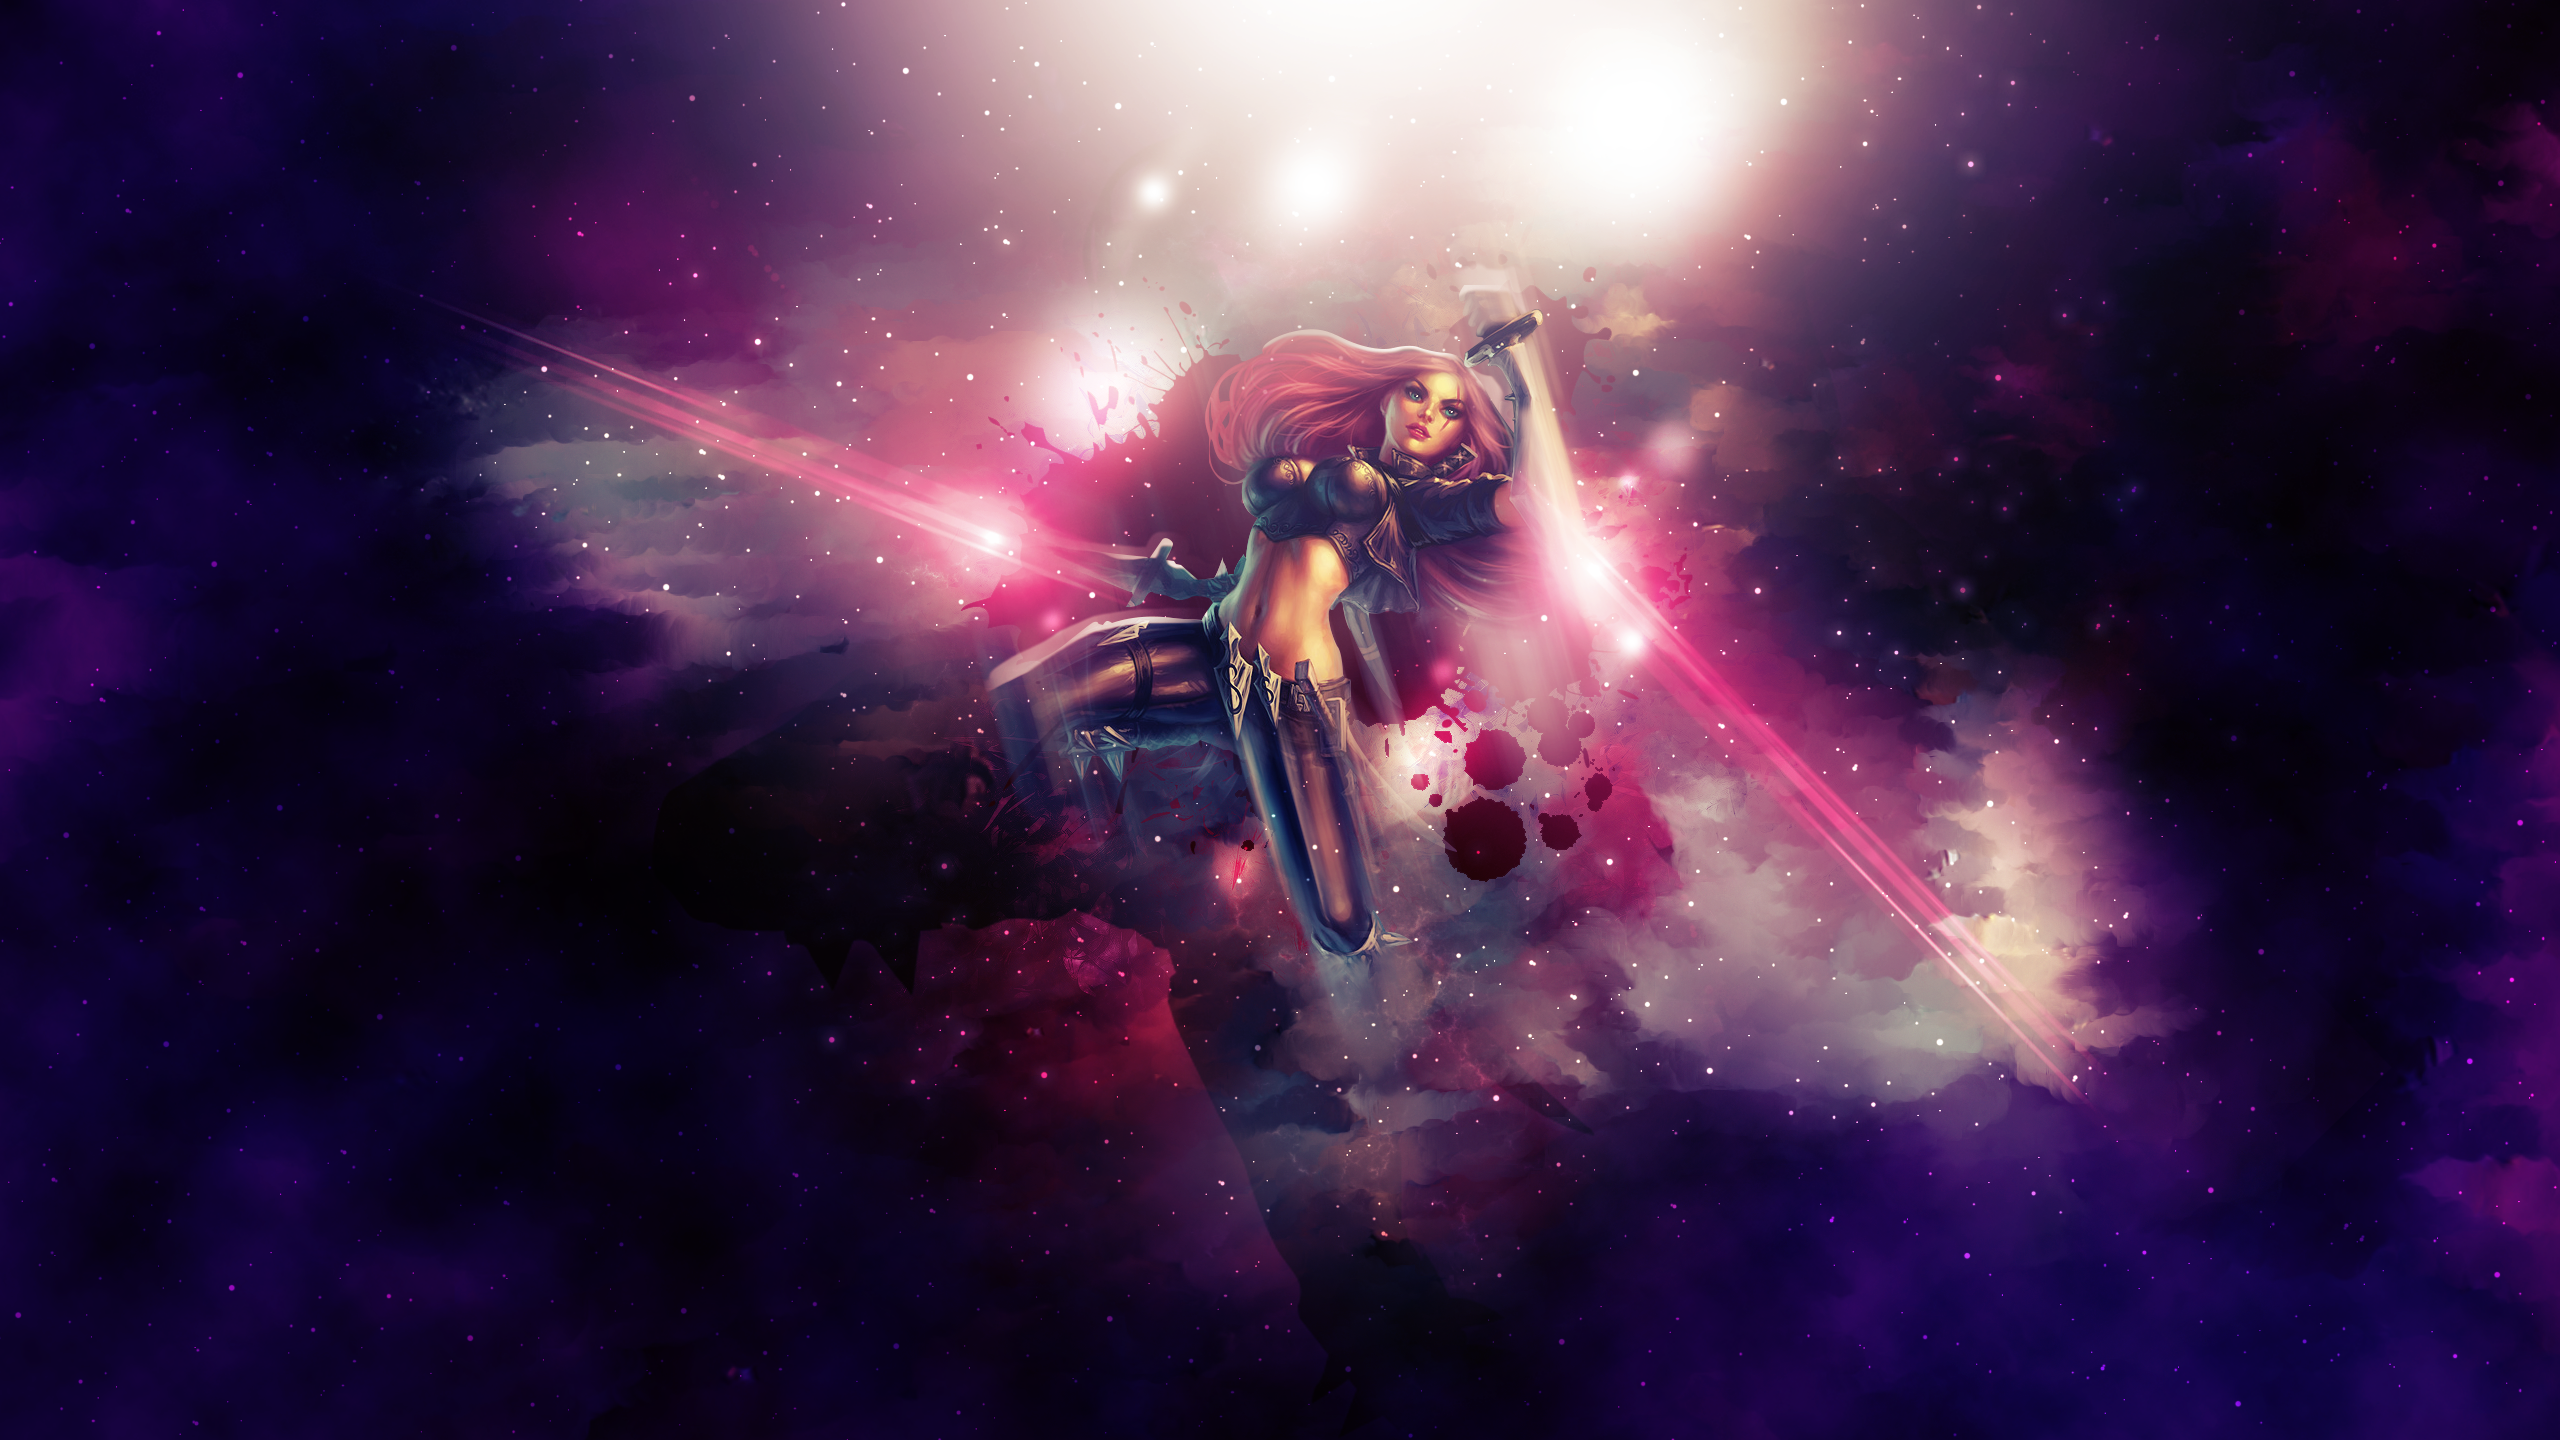 Katarina league of legends wallpaper by aynoe on for Deviantart wallpaper